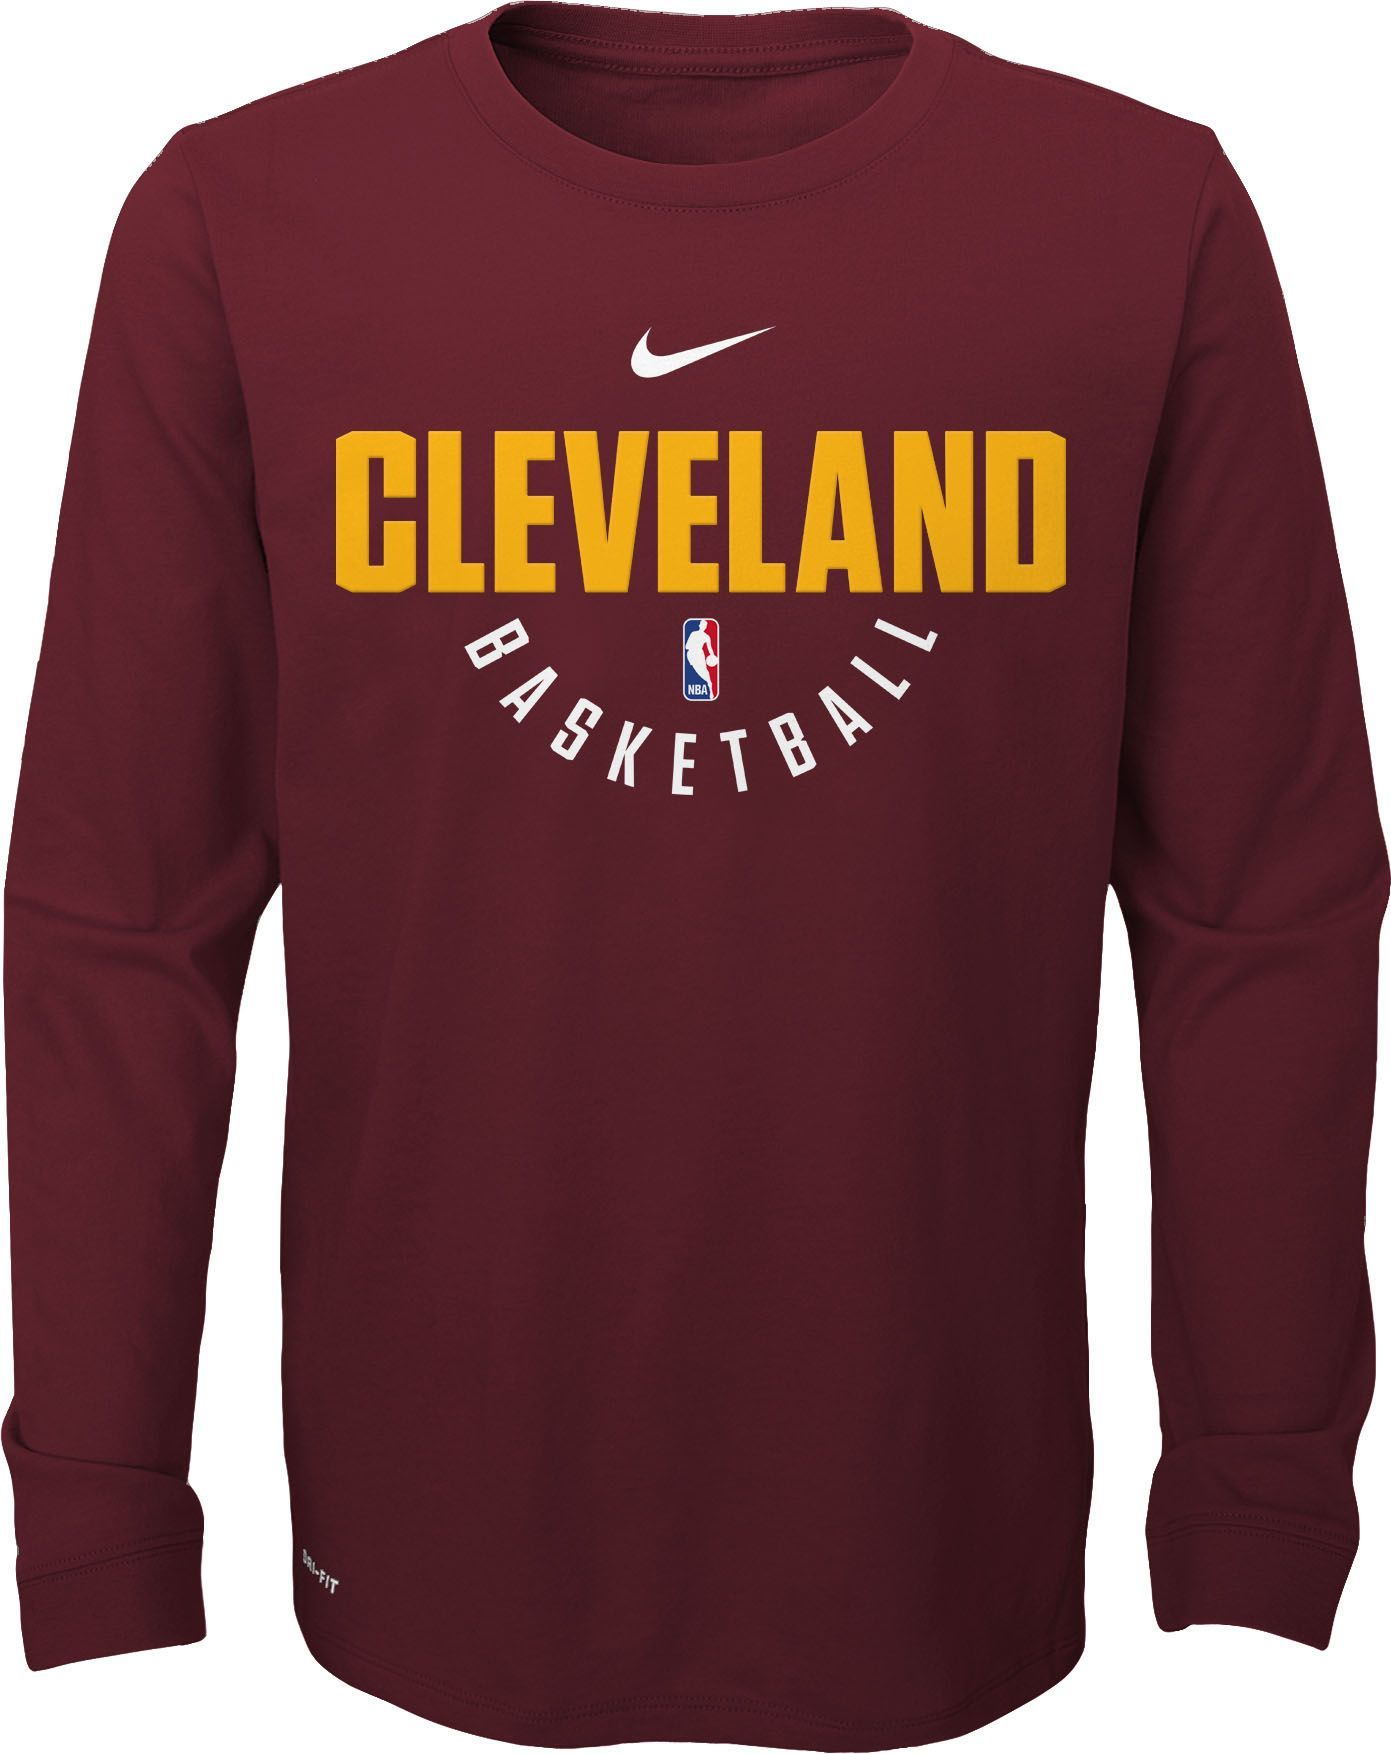 67f632485ee Nike Youth Cleveland Cavaliers Dri-FIT Burgundy Practice Long Sleeve Shirt,  Size: Medium, Team